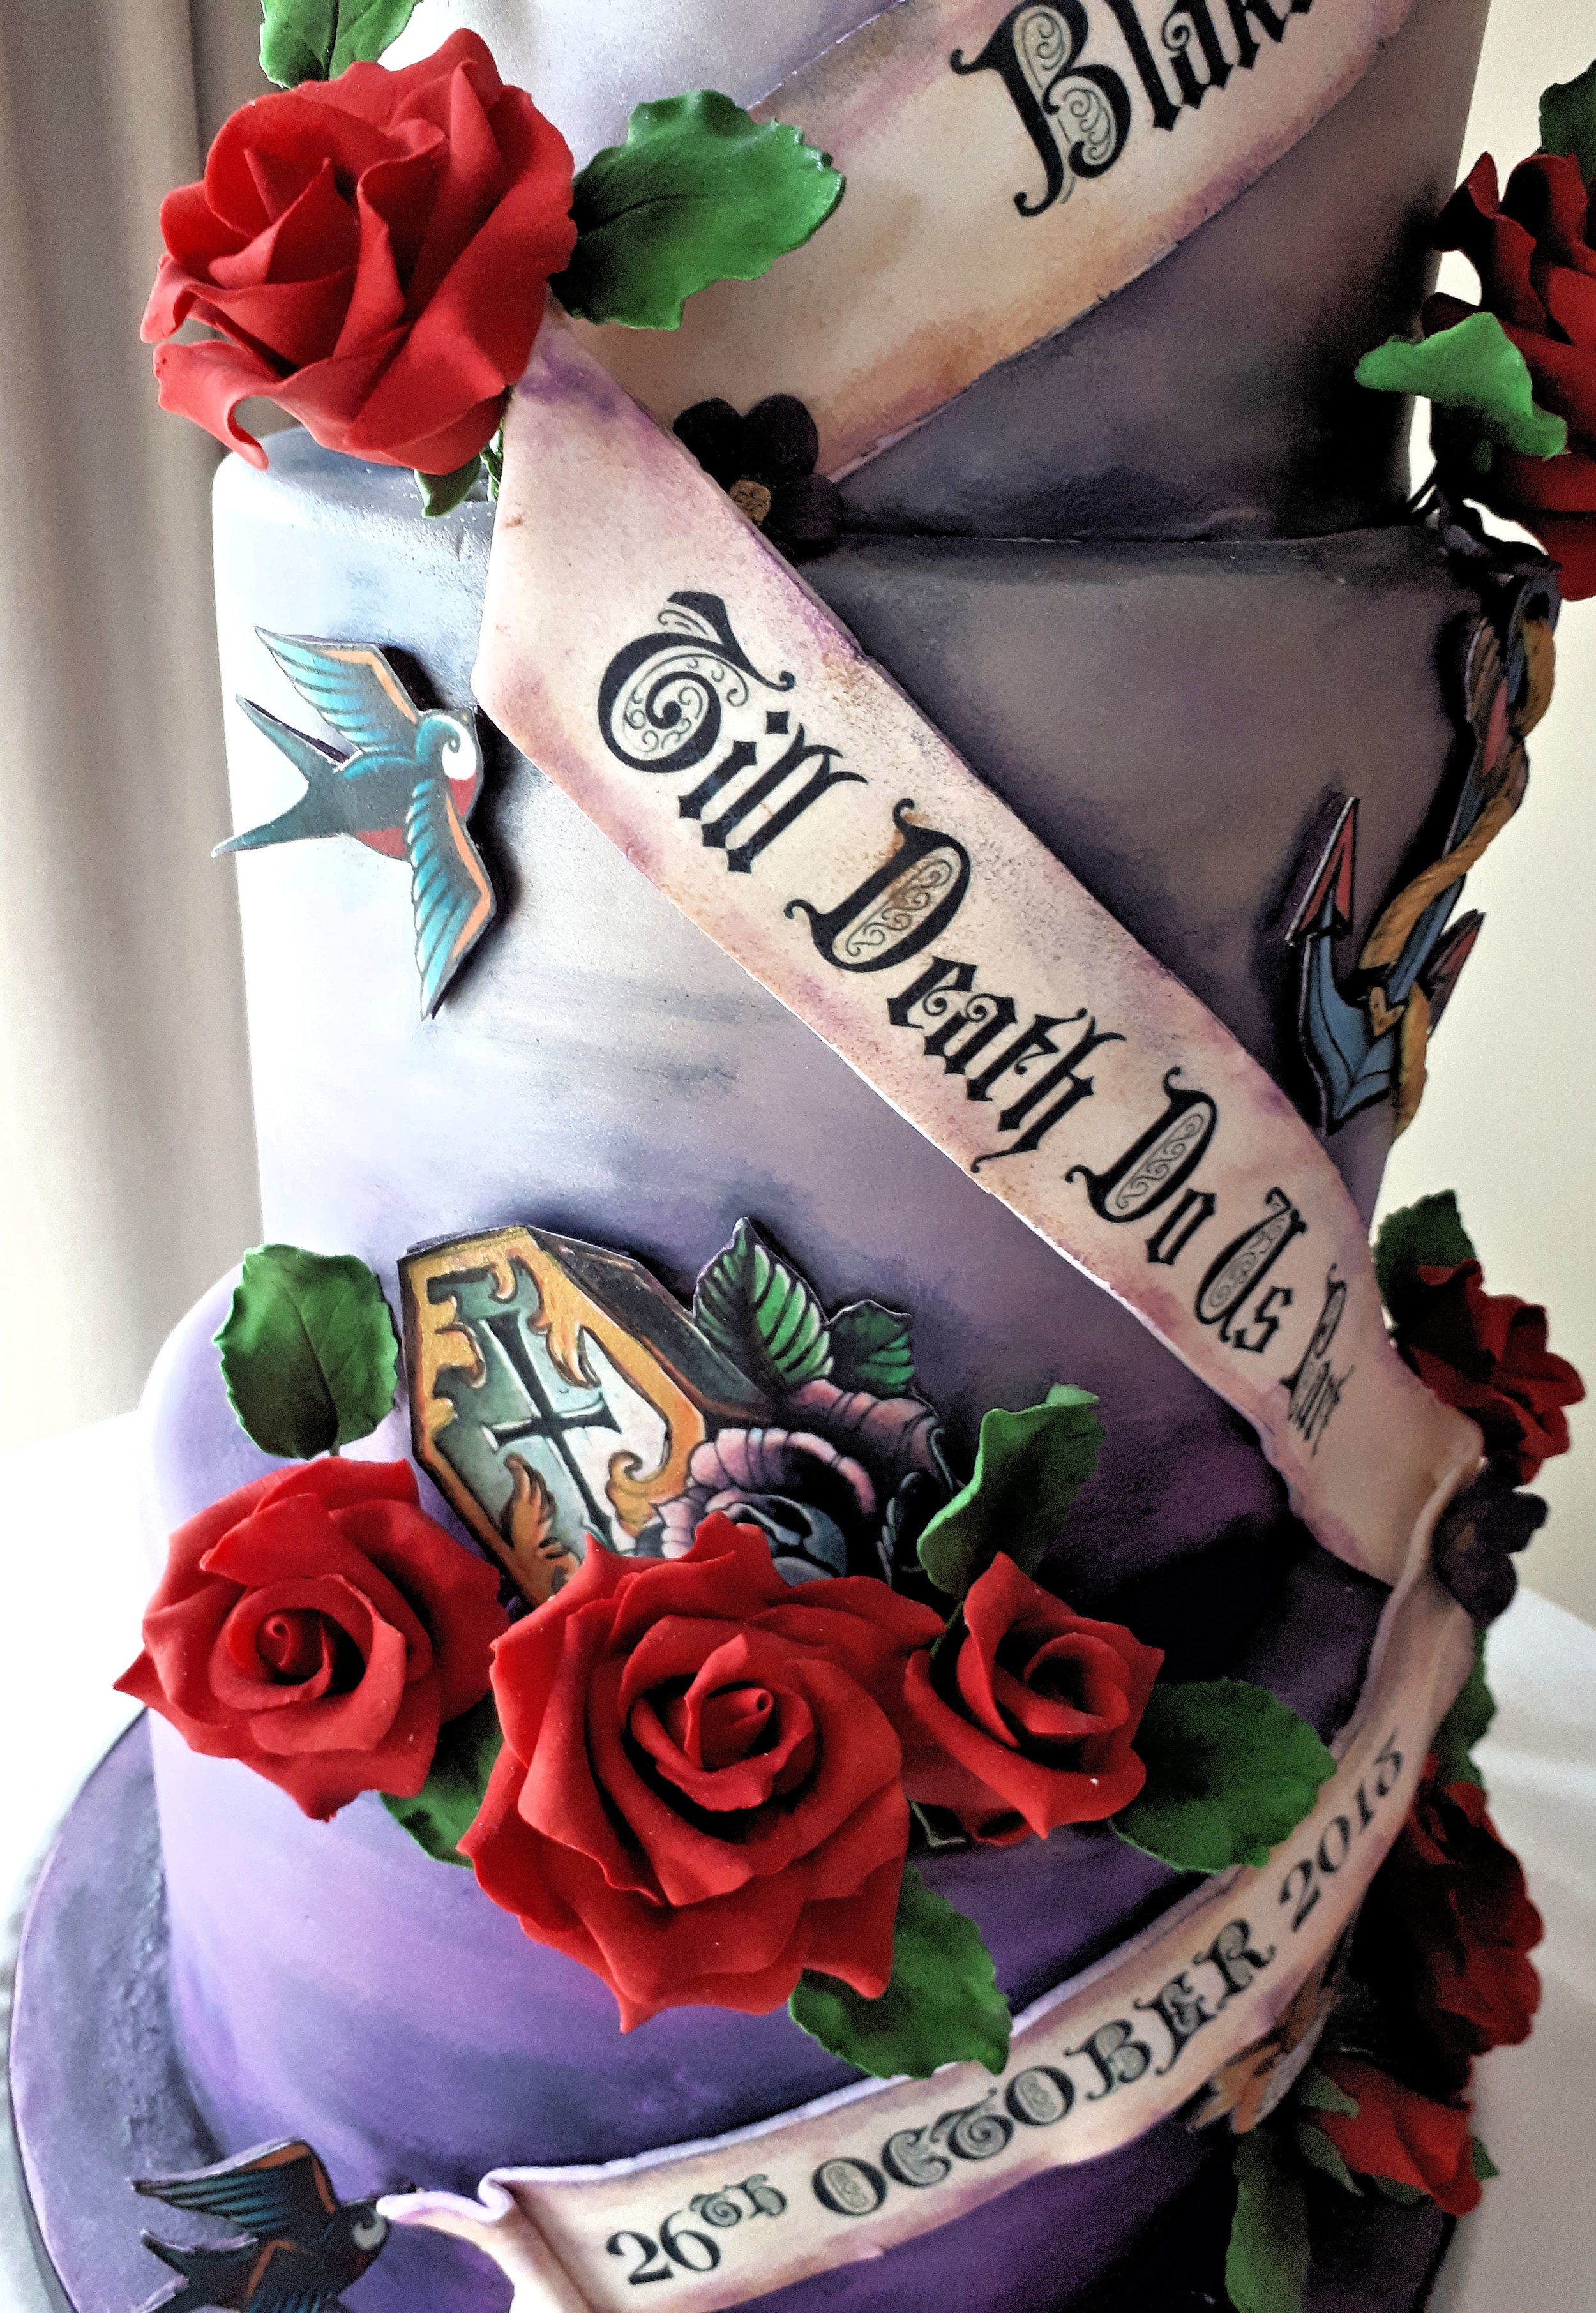 tattoo wedding Cake2.jpg